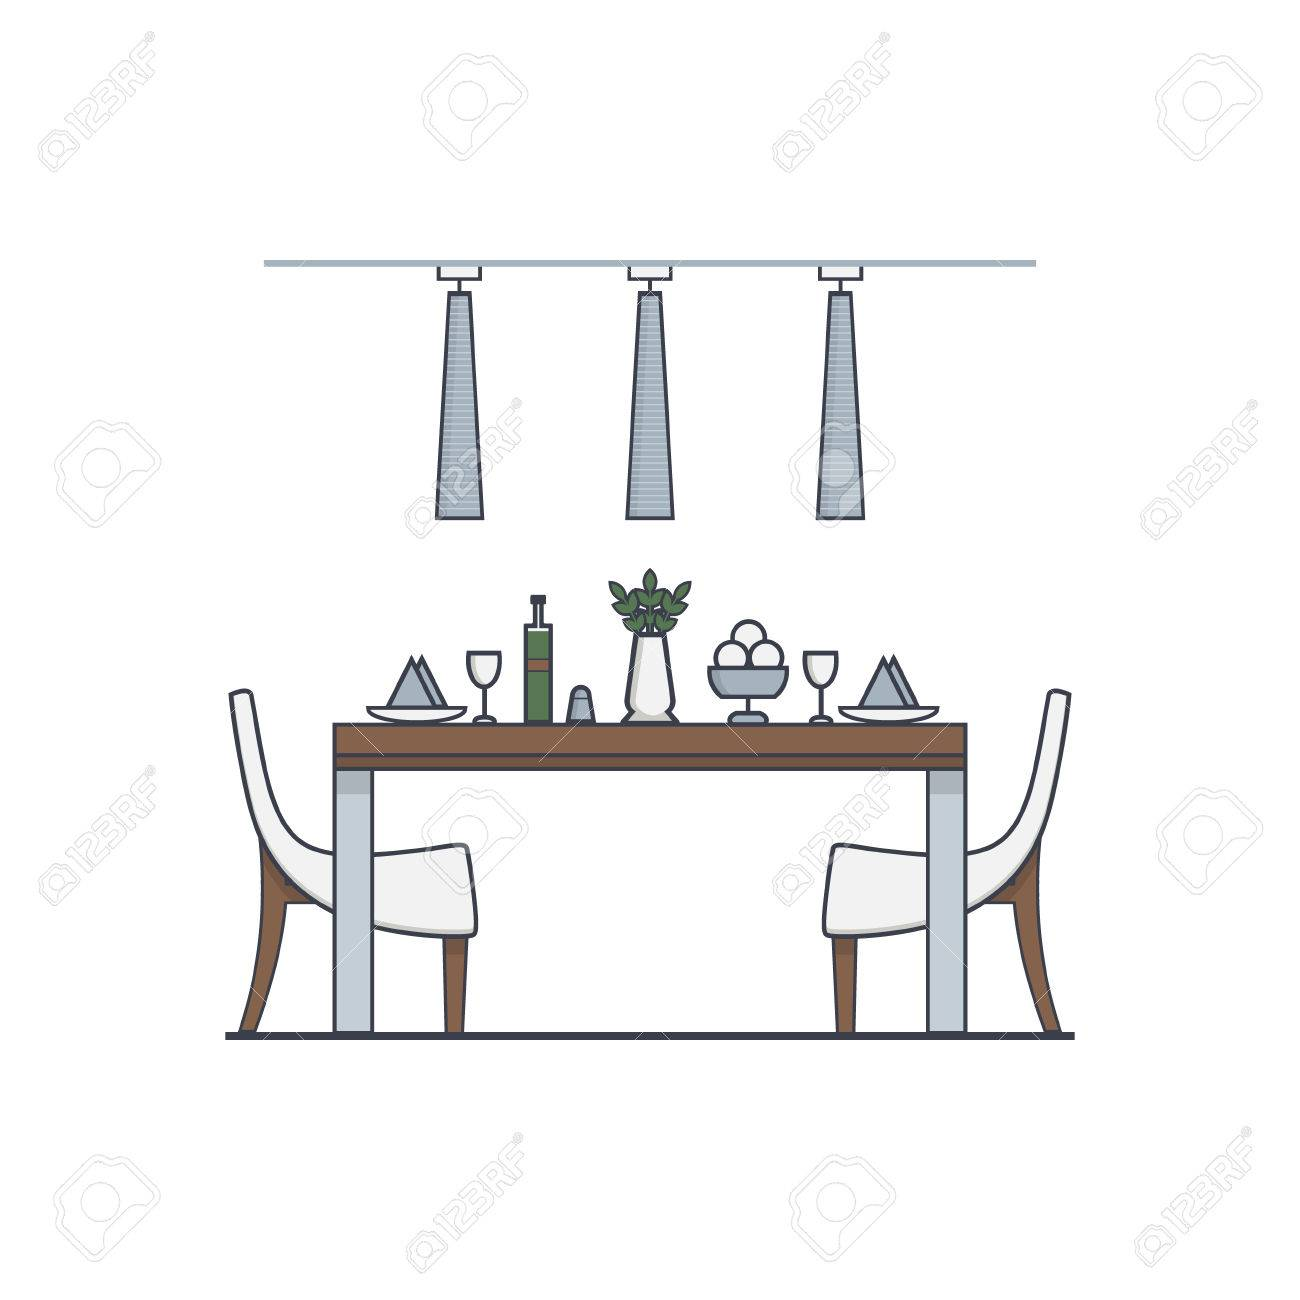 Dining Room Design Made In Modern Style Linear Vector Concept Of Apartment With Utensils